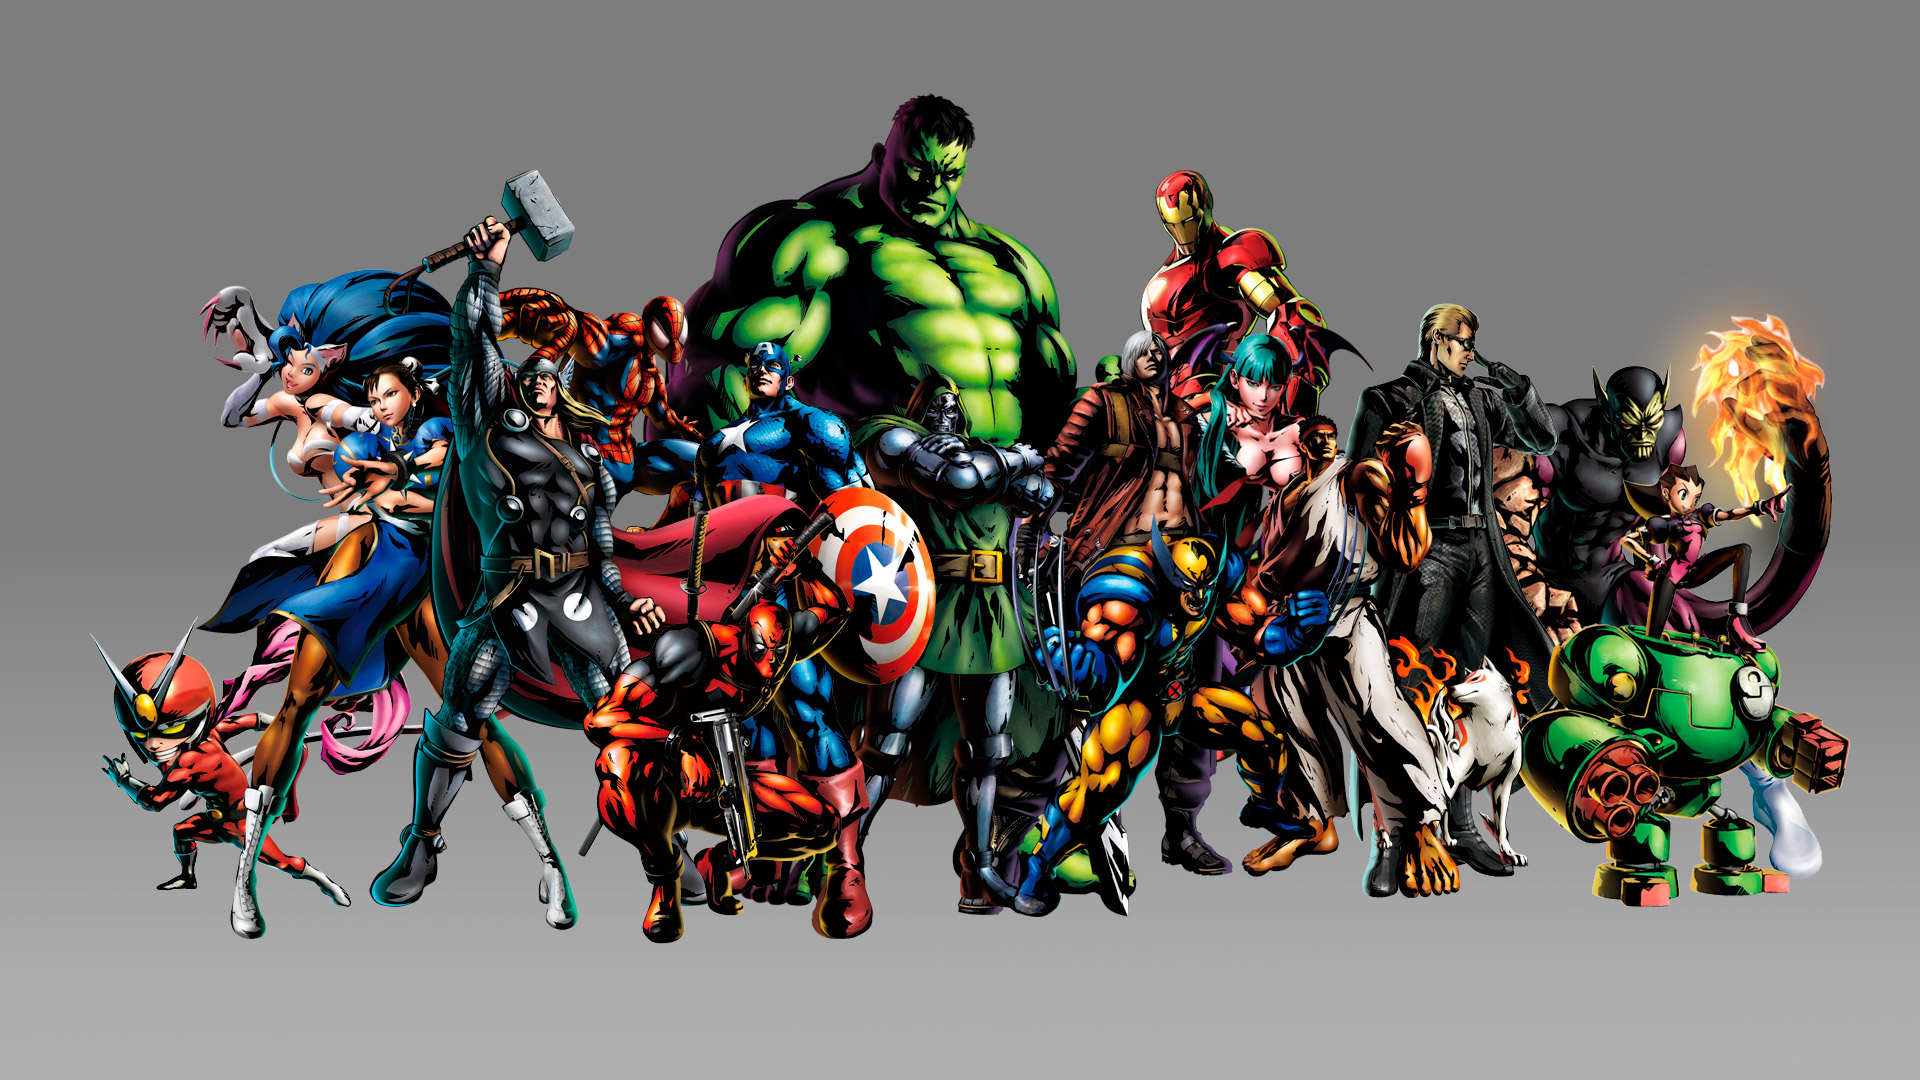 Amazing Wallpaper Marvel High Resolution - marvel-wallpaper-4584-4673-hd-wallpapers  HD_59670.jpg